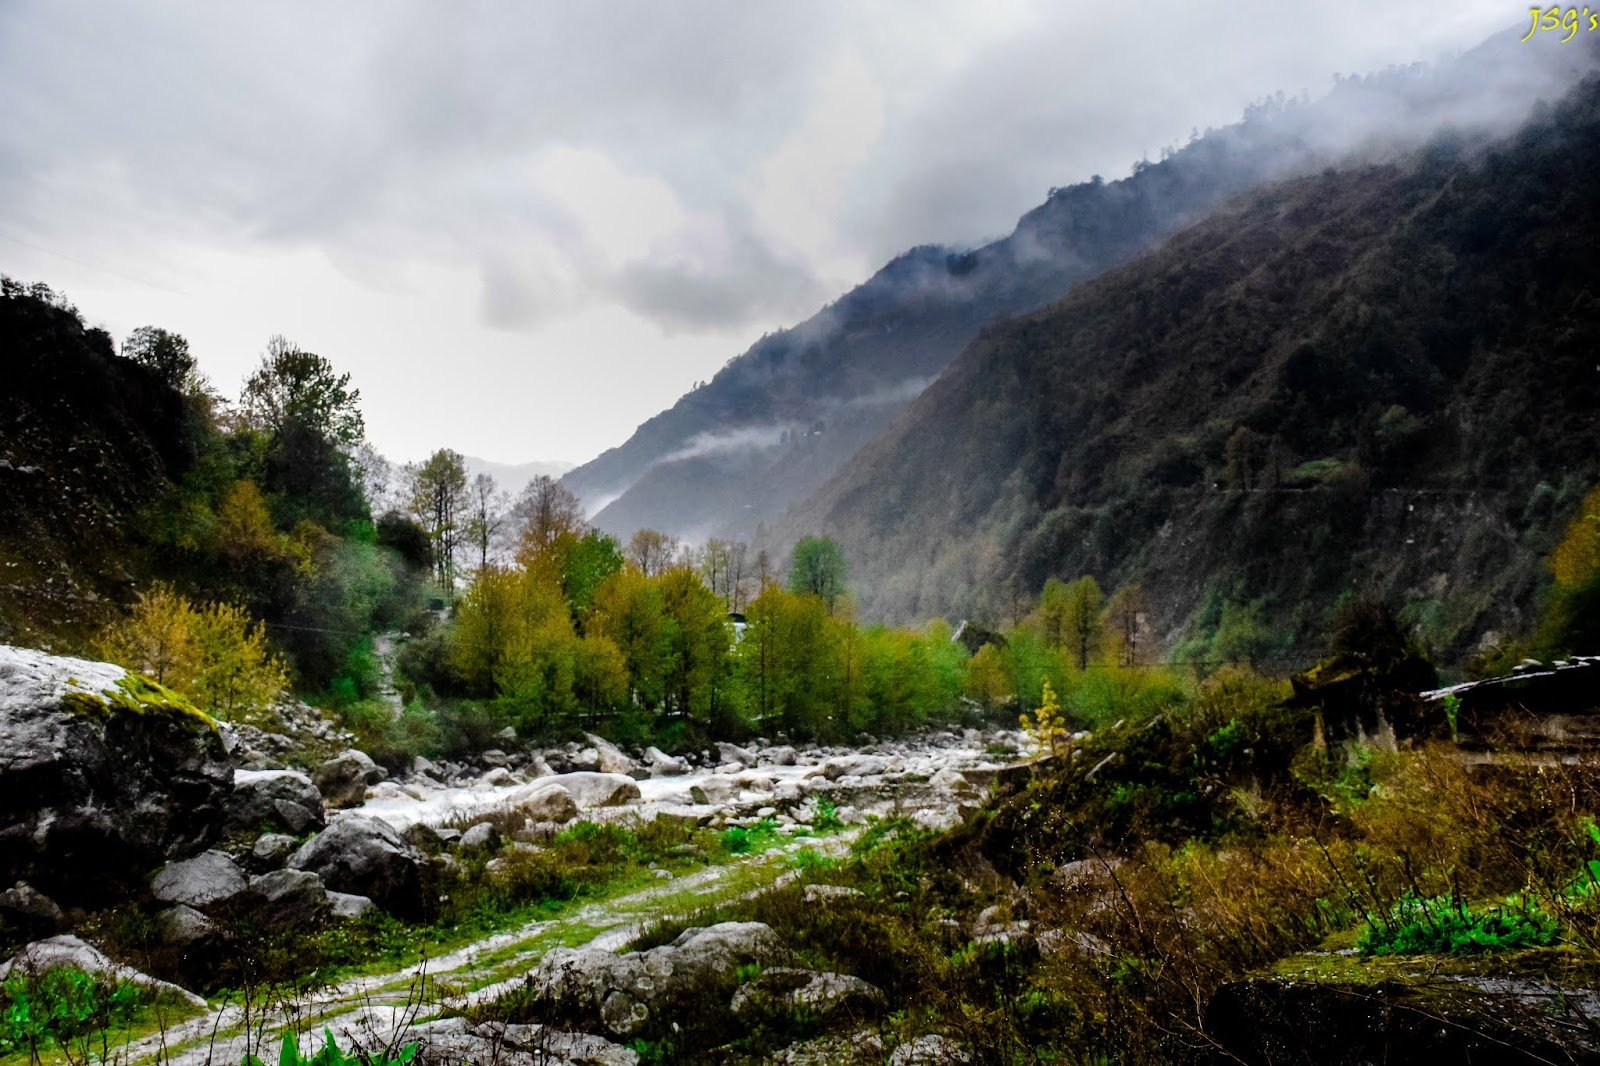 Greeneries along the Lachung Chu: Photo by Jayashree Sengupta @DoiBedouin